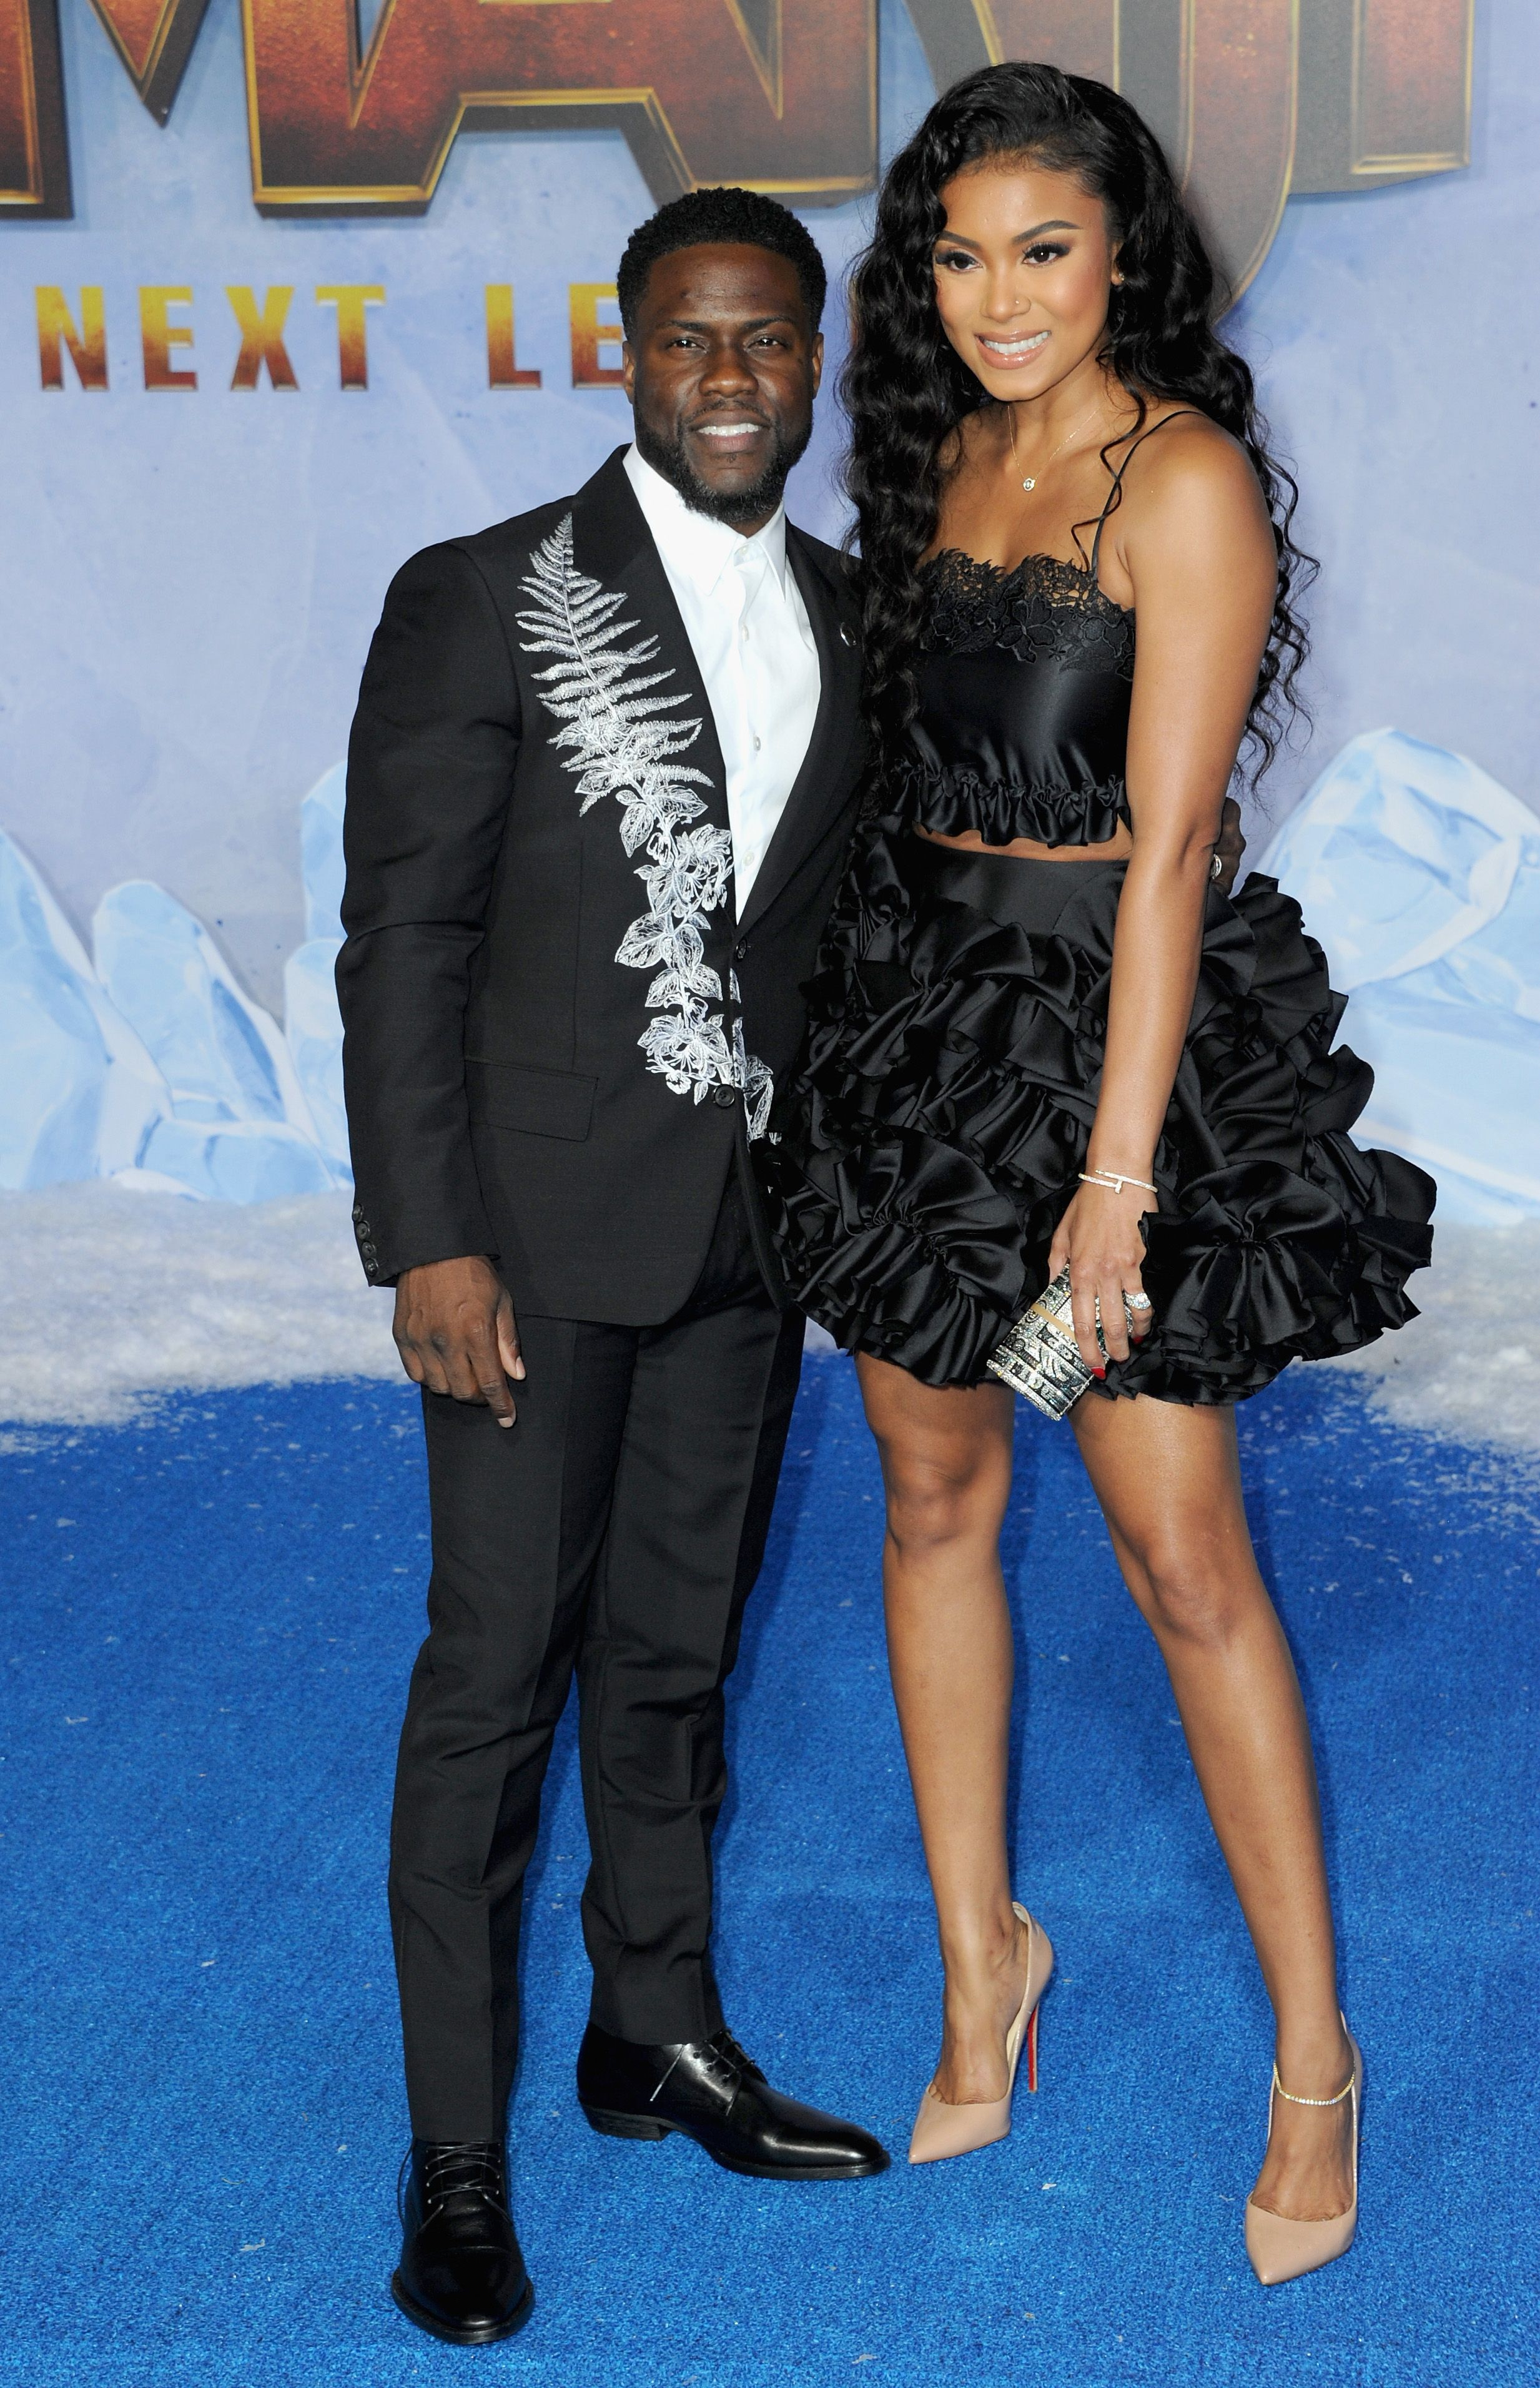 """Kevin Hart and Eniko Parrish at the premiere of """"Jumanji: The Next Level"""" on December 9, 2019 in Hollywood.   Photo: Getty Images"""